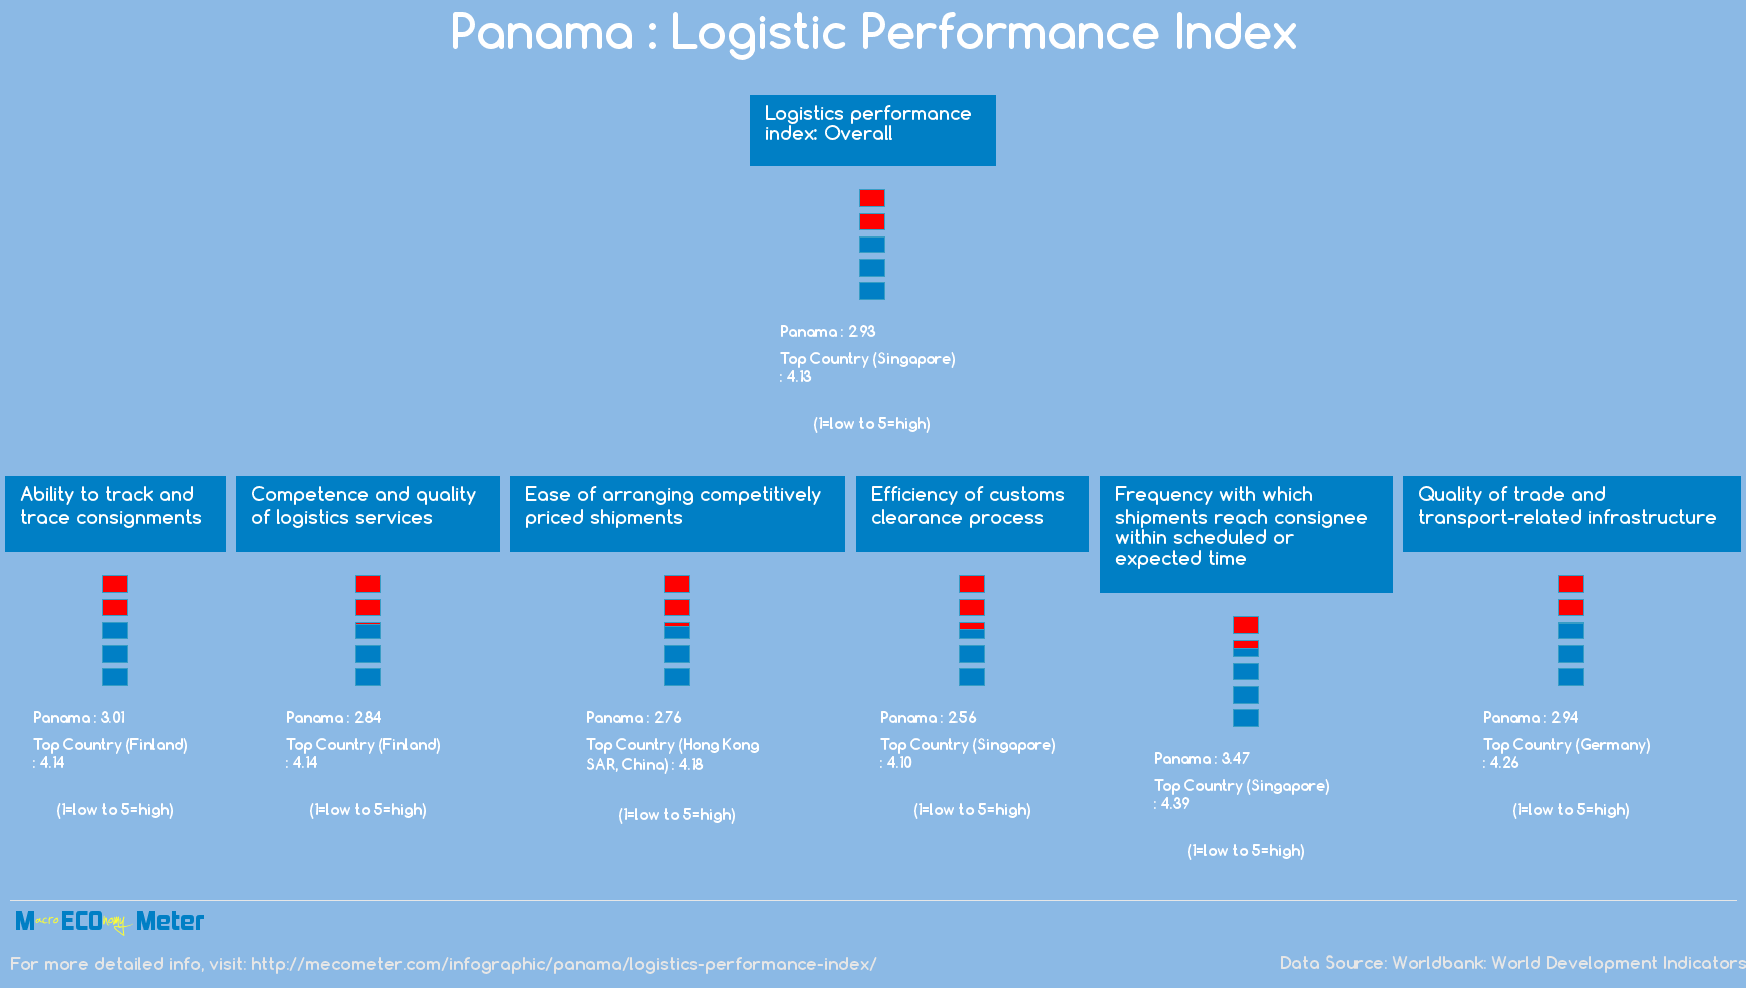 Panama : Logistic Performance Index